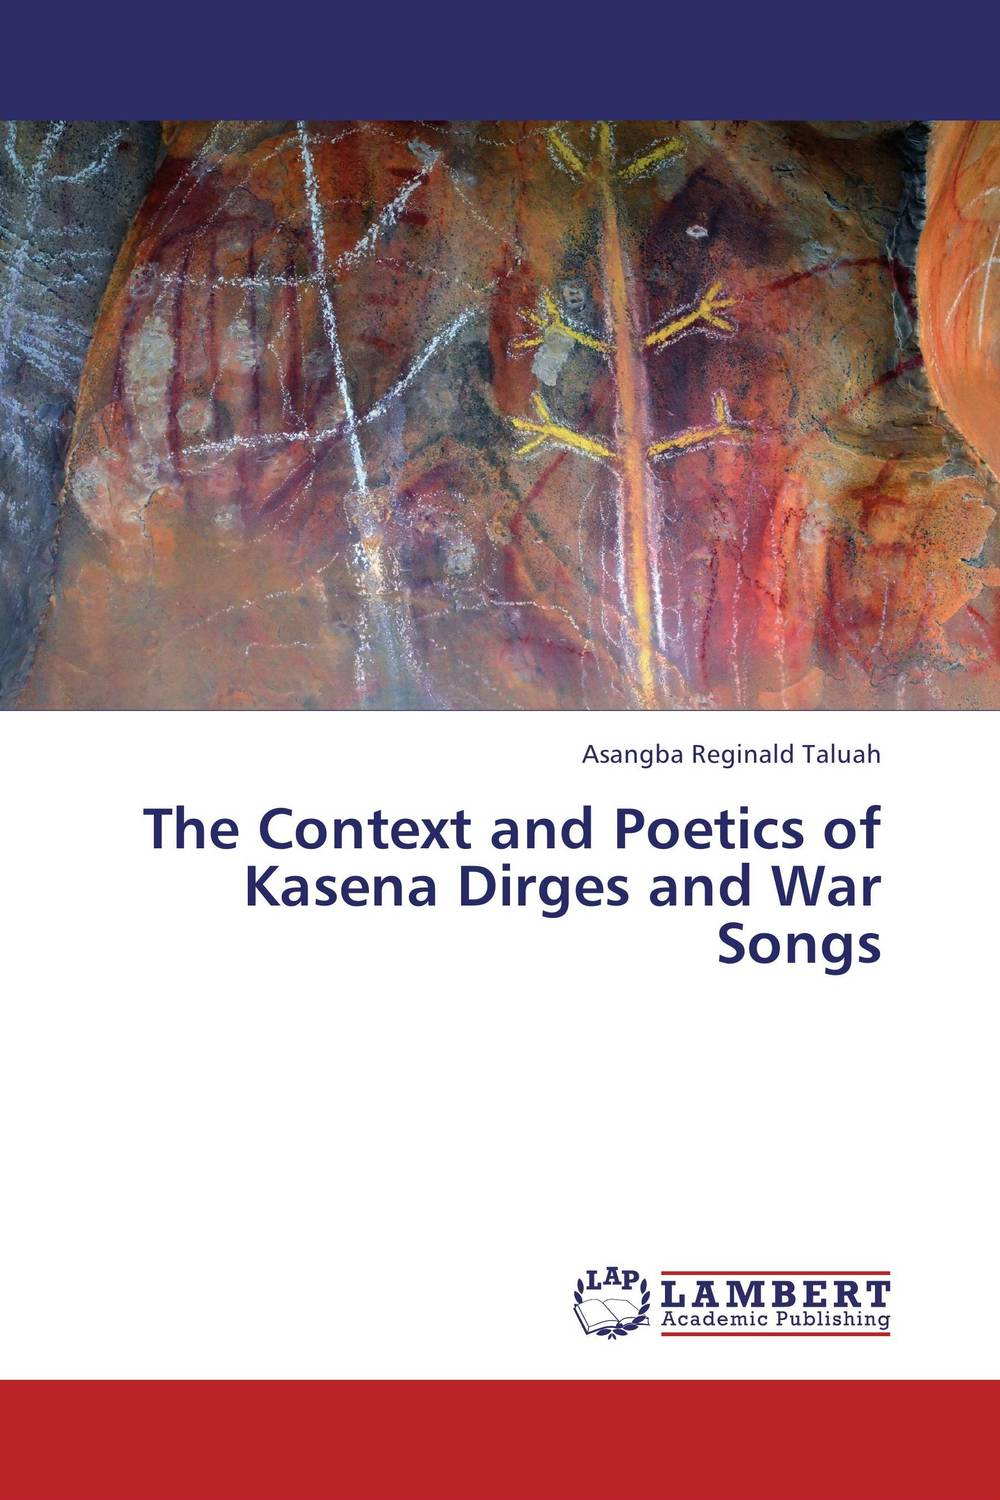 The Context and Poetics of Kasena Dirges and War Songs